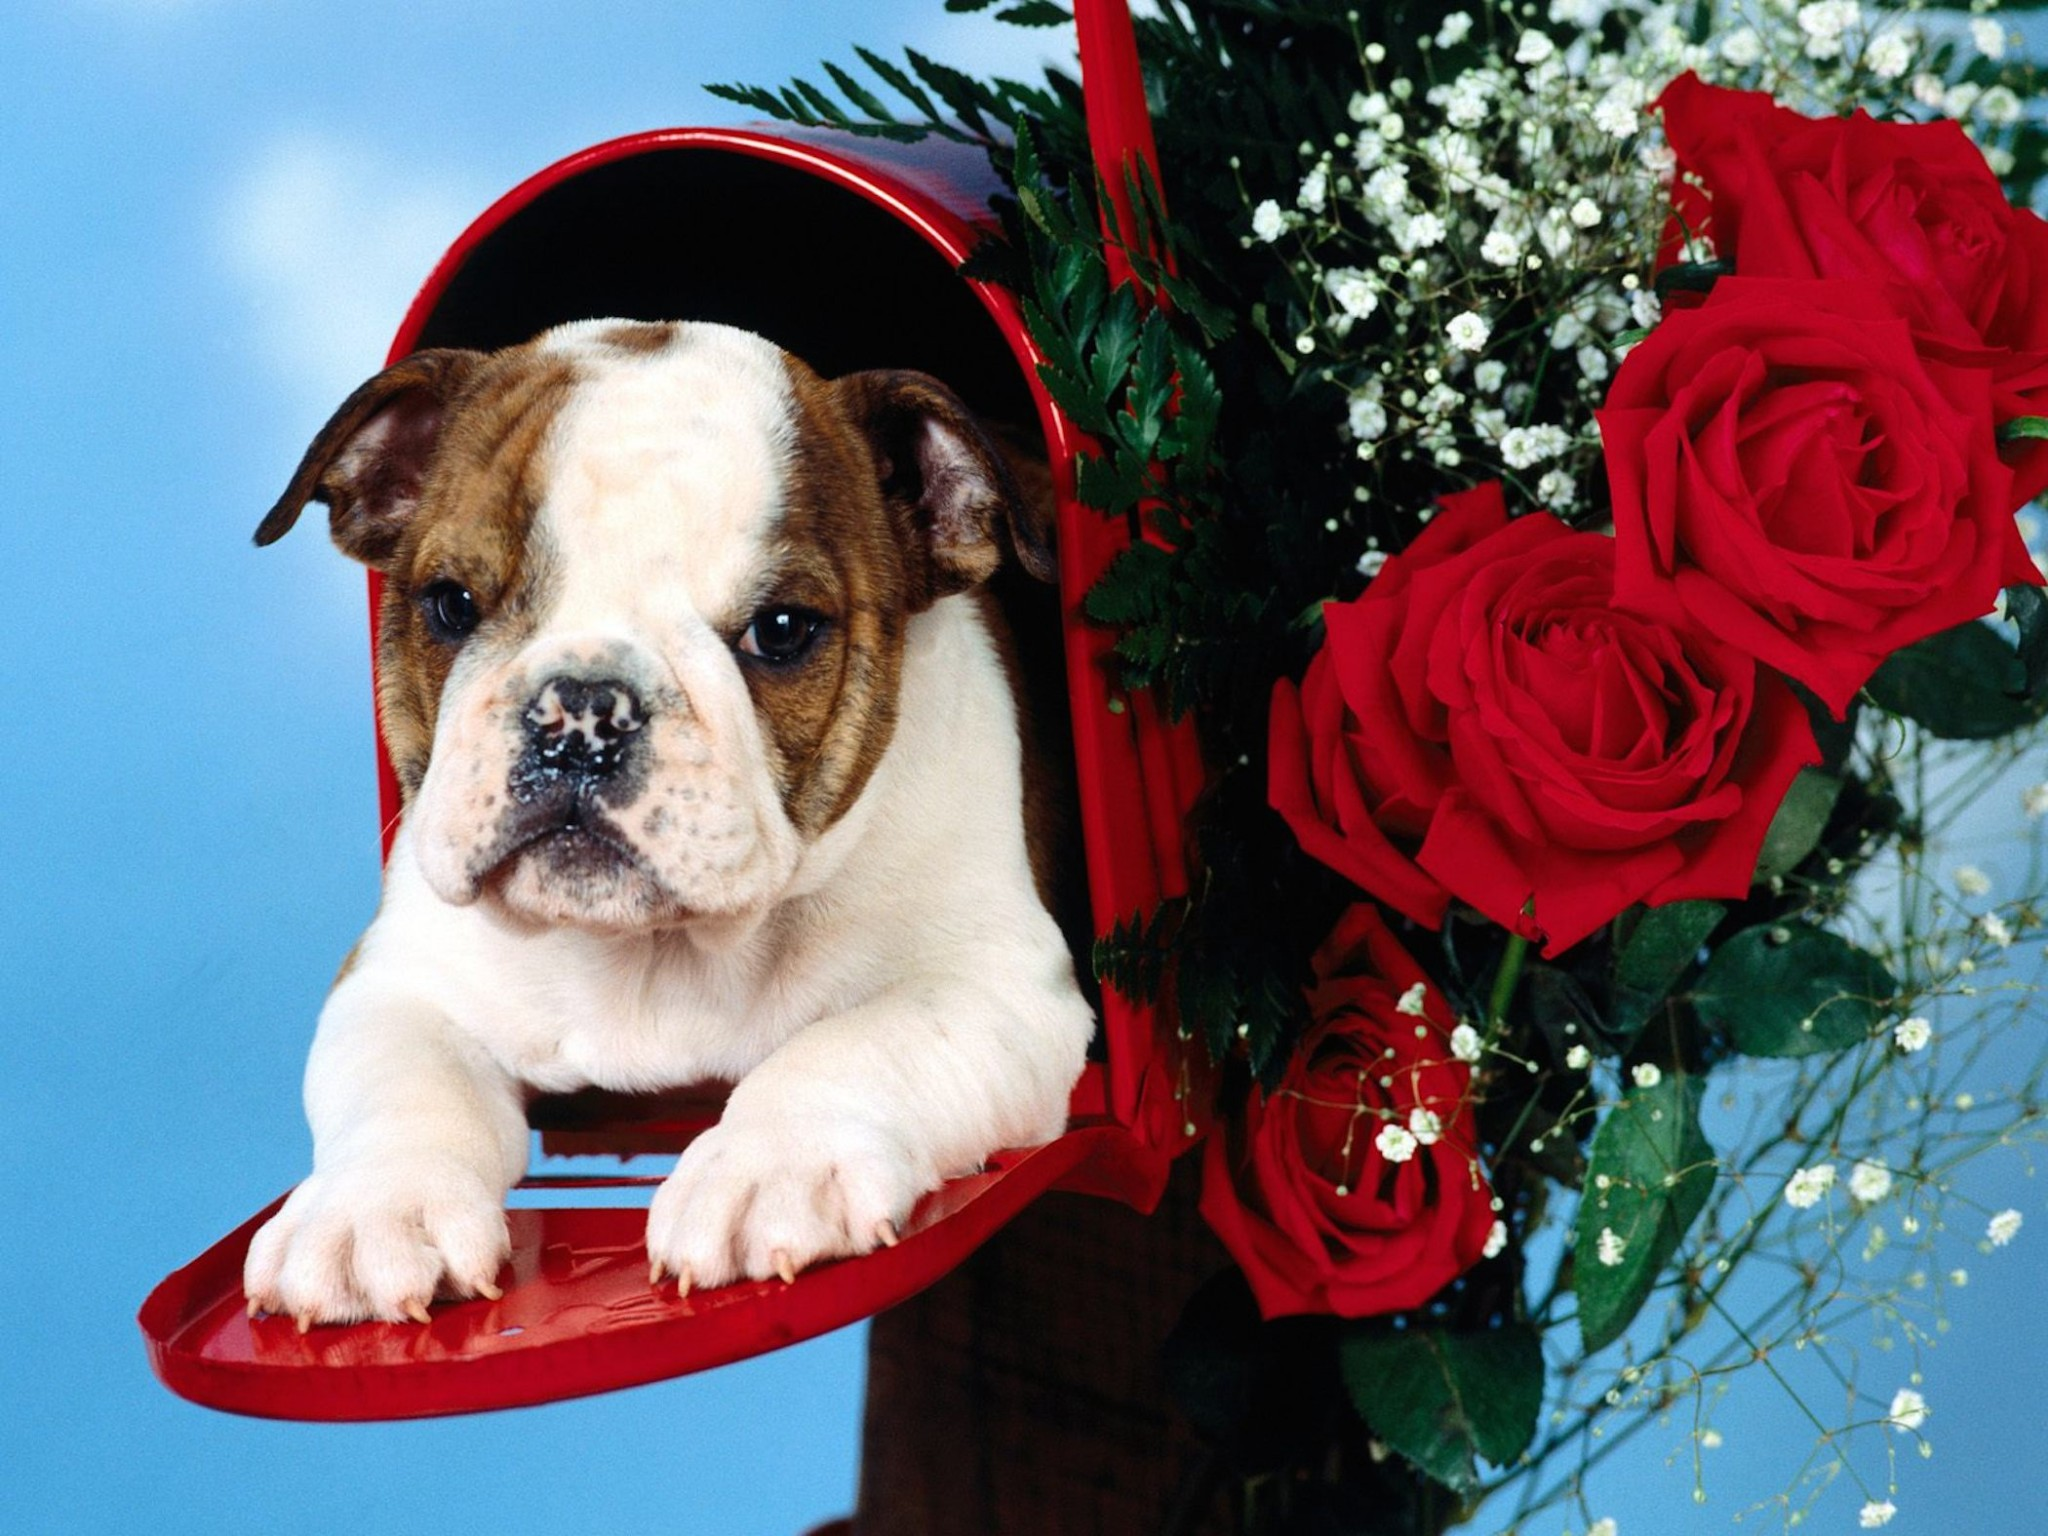 Free Download Cute Baby Wallpaper For Pc Cute English Bulldog Puppy Wallpaper Free Hd Downloads